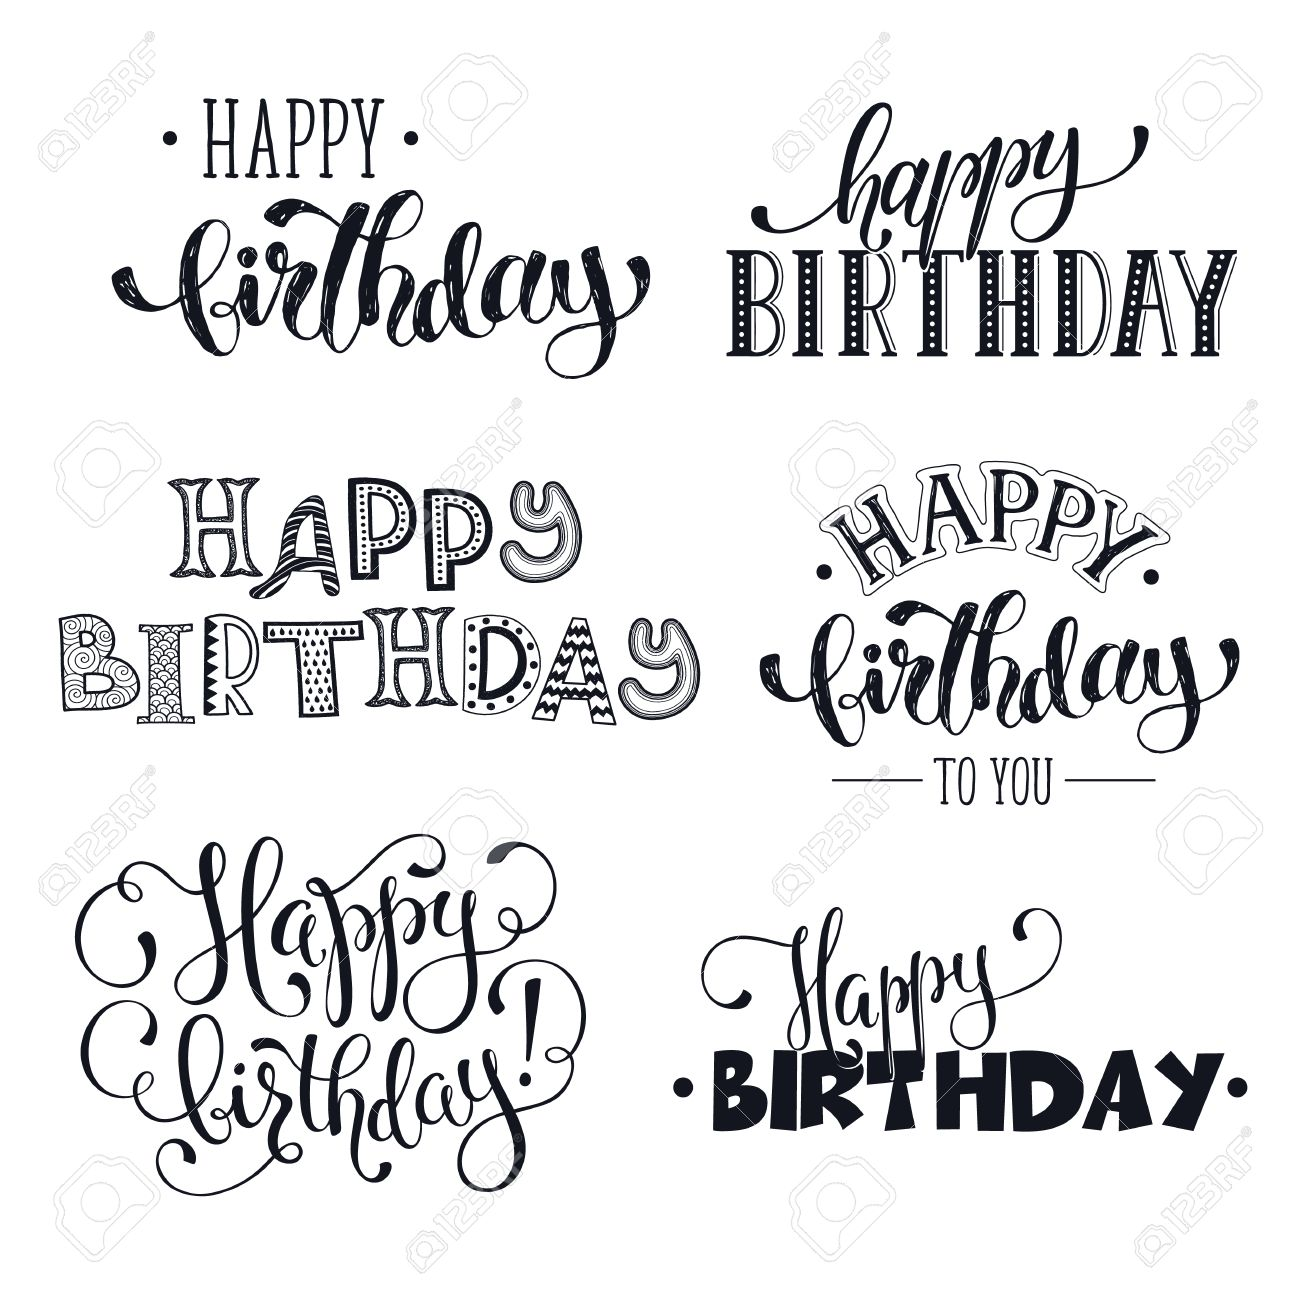 Hand Written Happy Birthday Phrases Greeting Card Text Templates Isolated On White Background